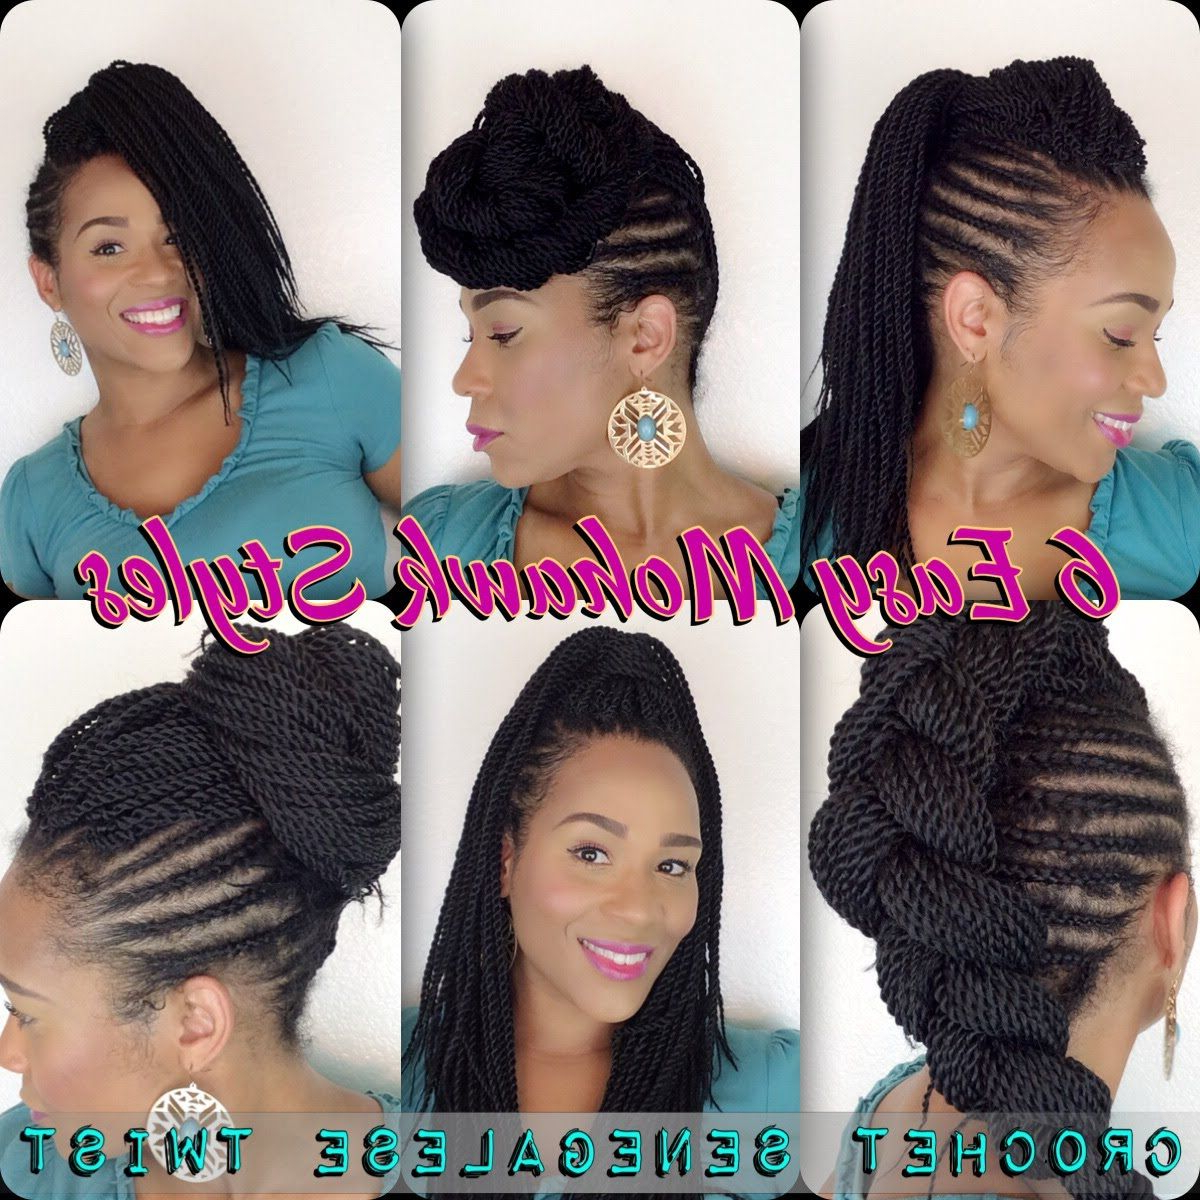 Trendy Fully Braided Mohawk Hairstyles Inside 6 Easy Mohawk Styles – Senegalese Twist (View 18 of 20)